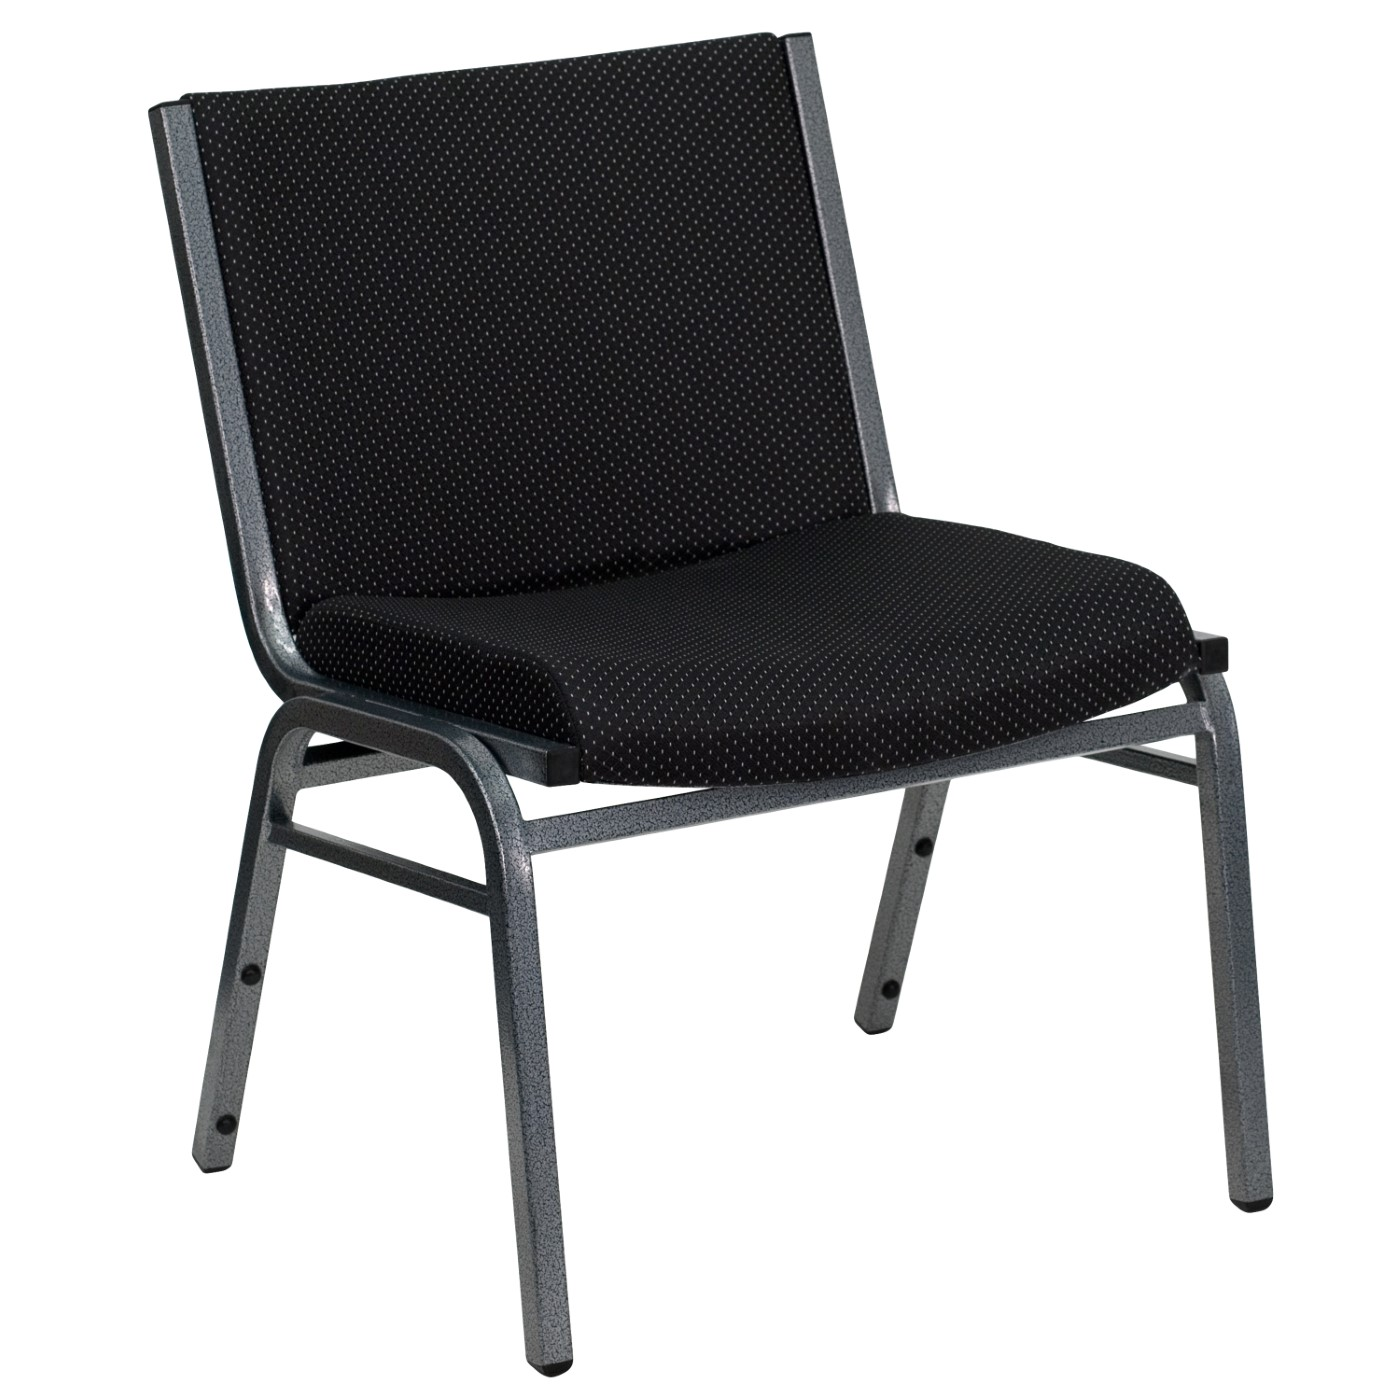 TOUGH ENOUGH Series Big & Tall 1000 lb. Rated Black Fabric Stack Chair